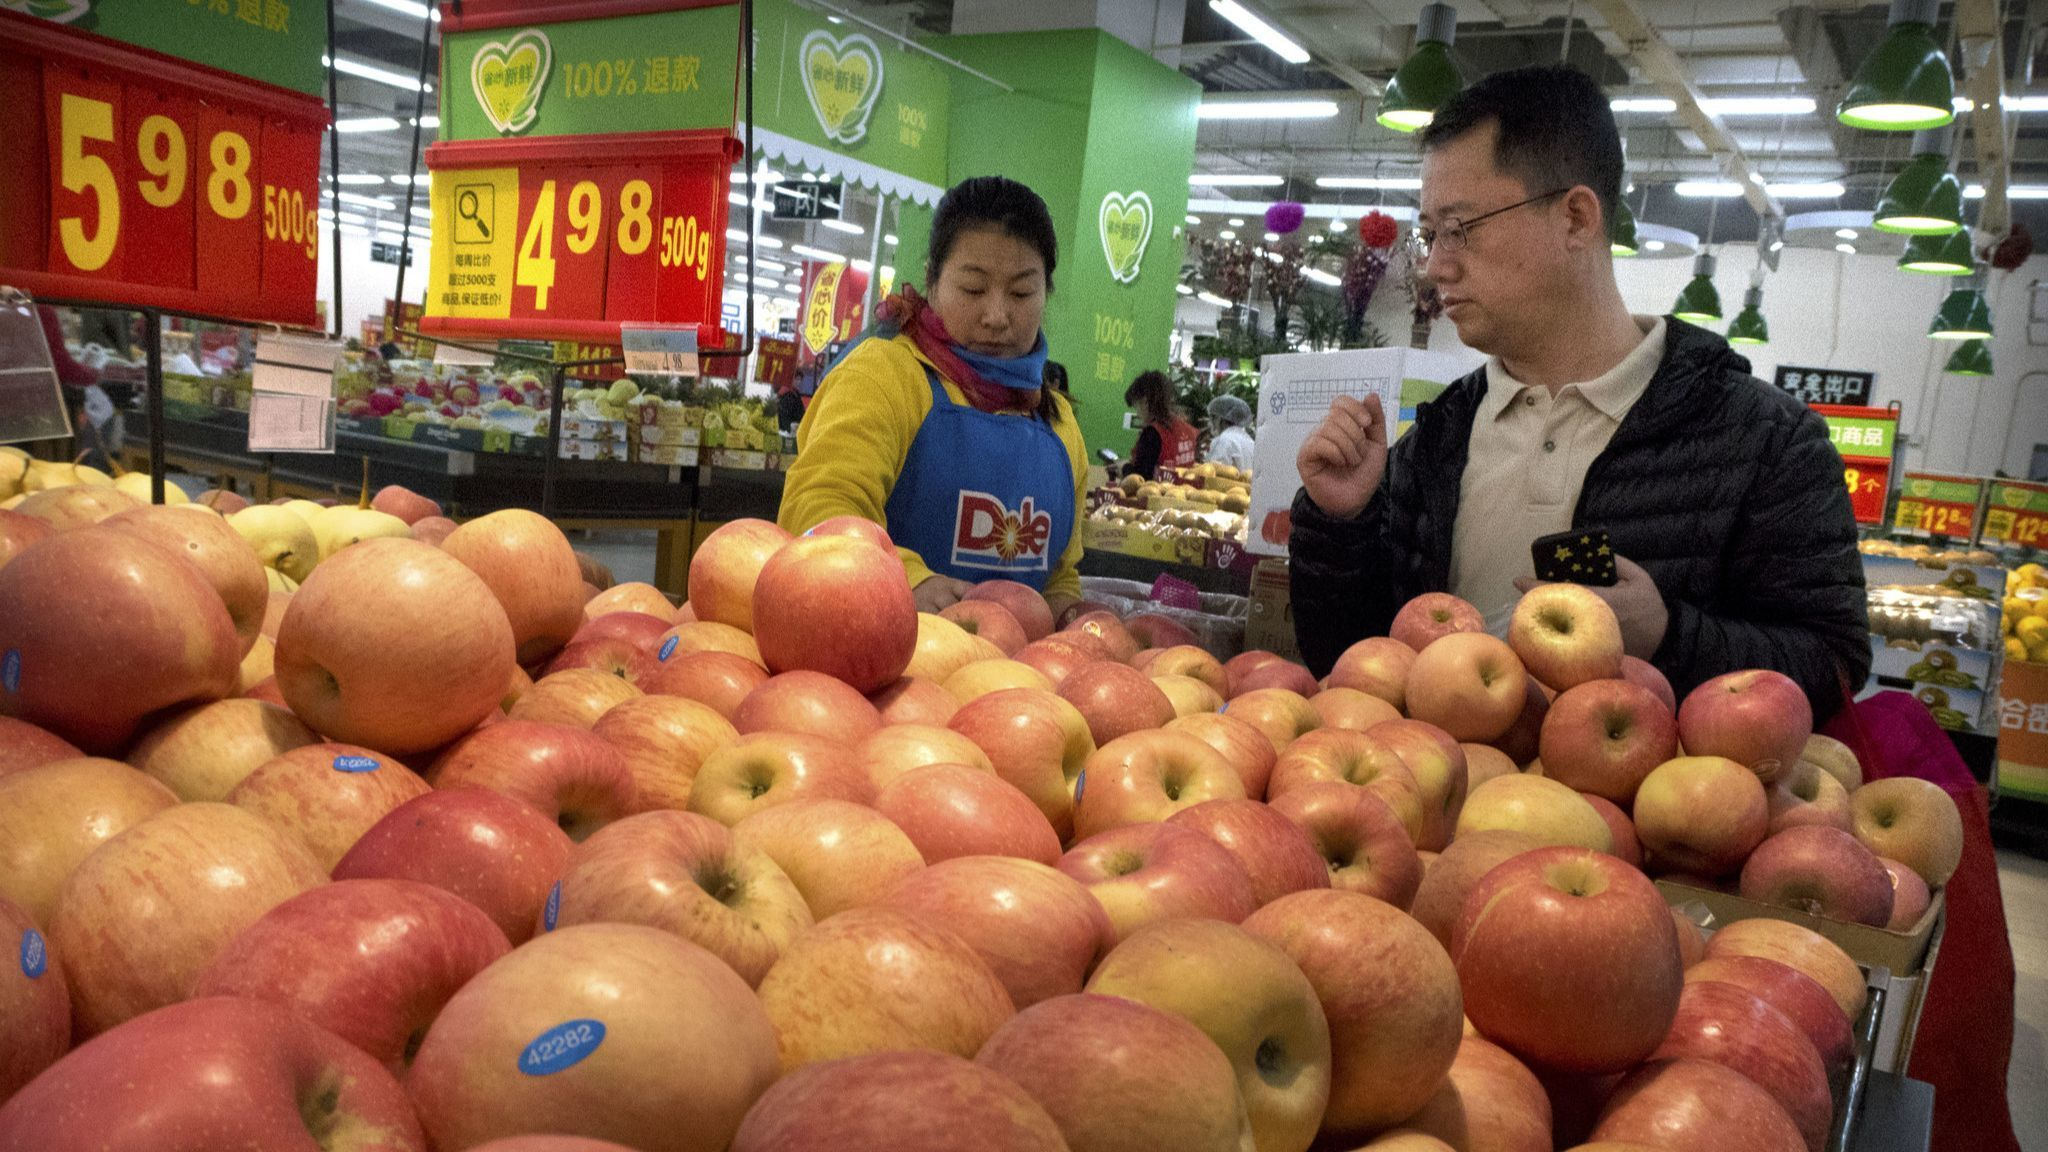 A customer shops for apples at a supermarket in Beijing.